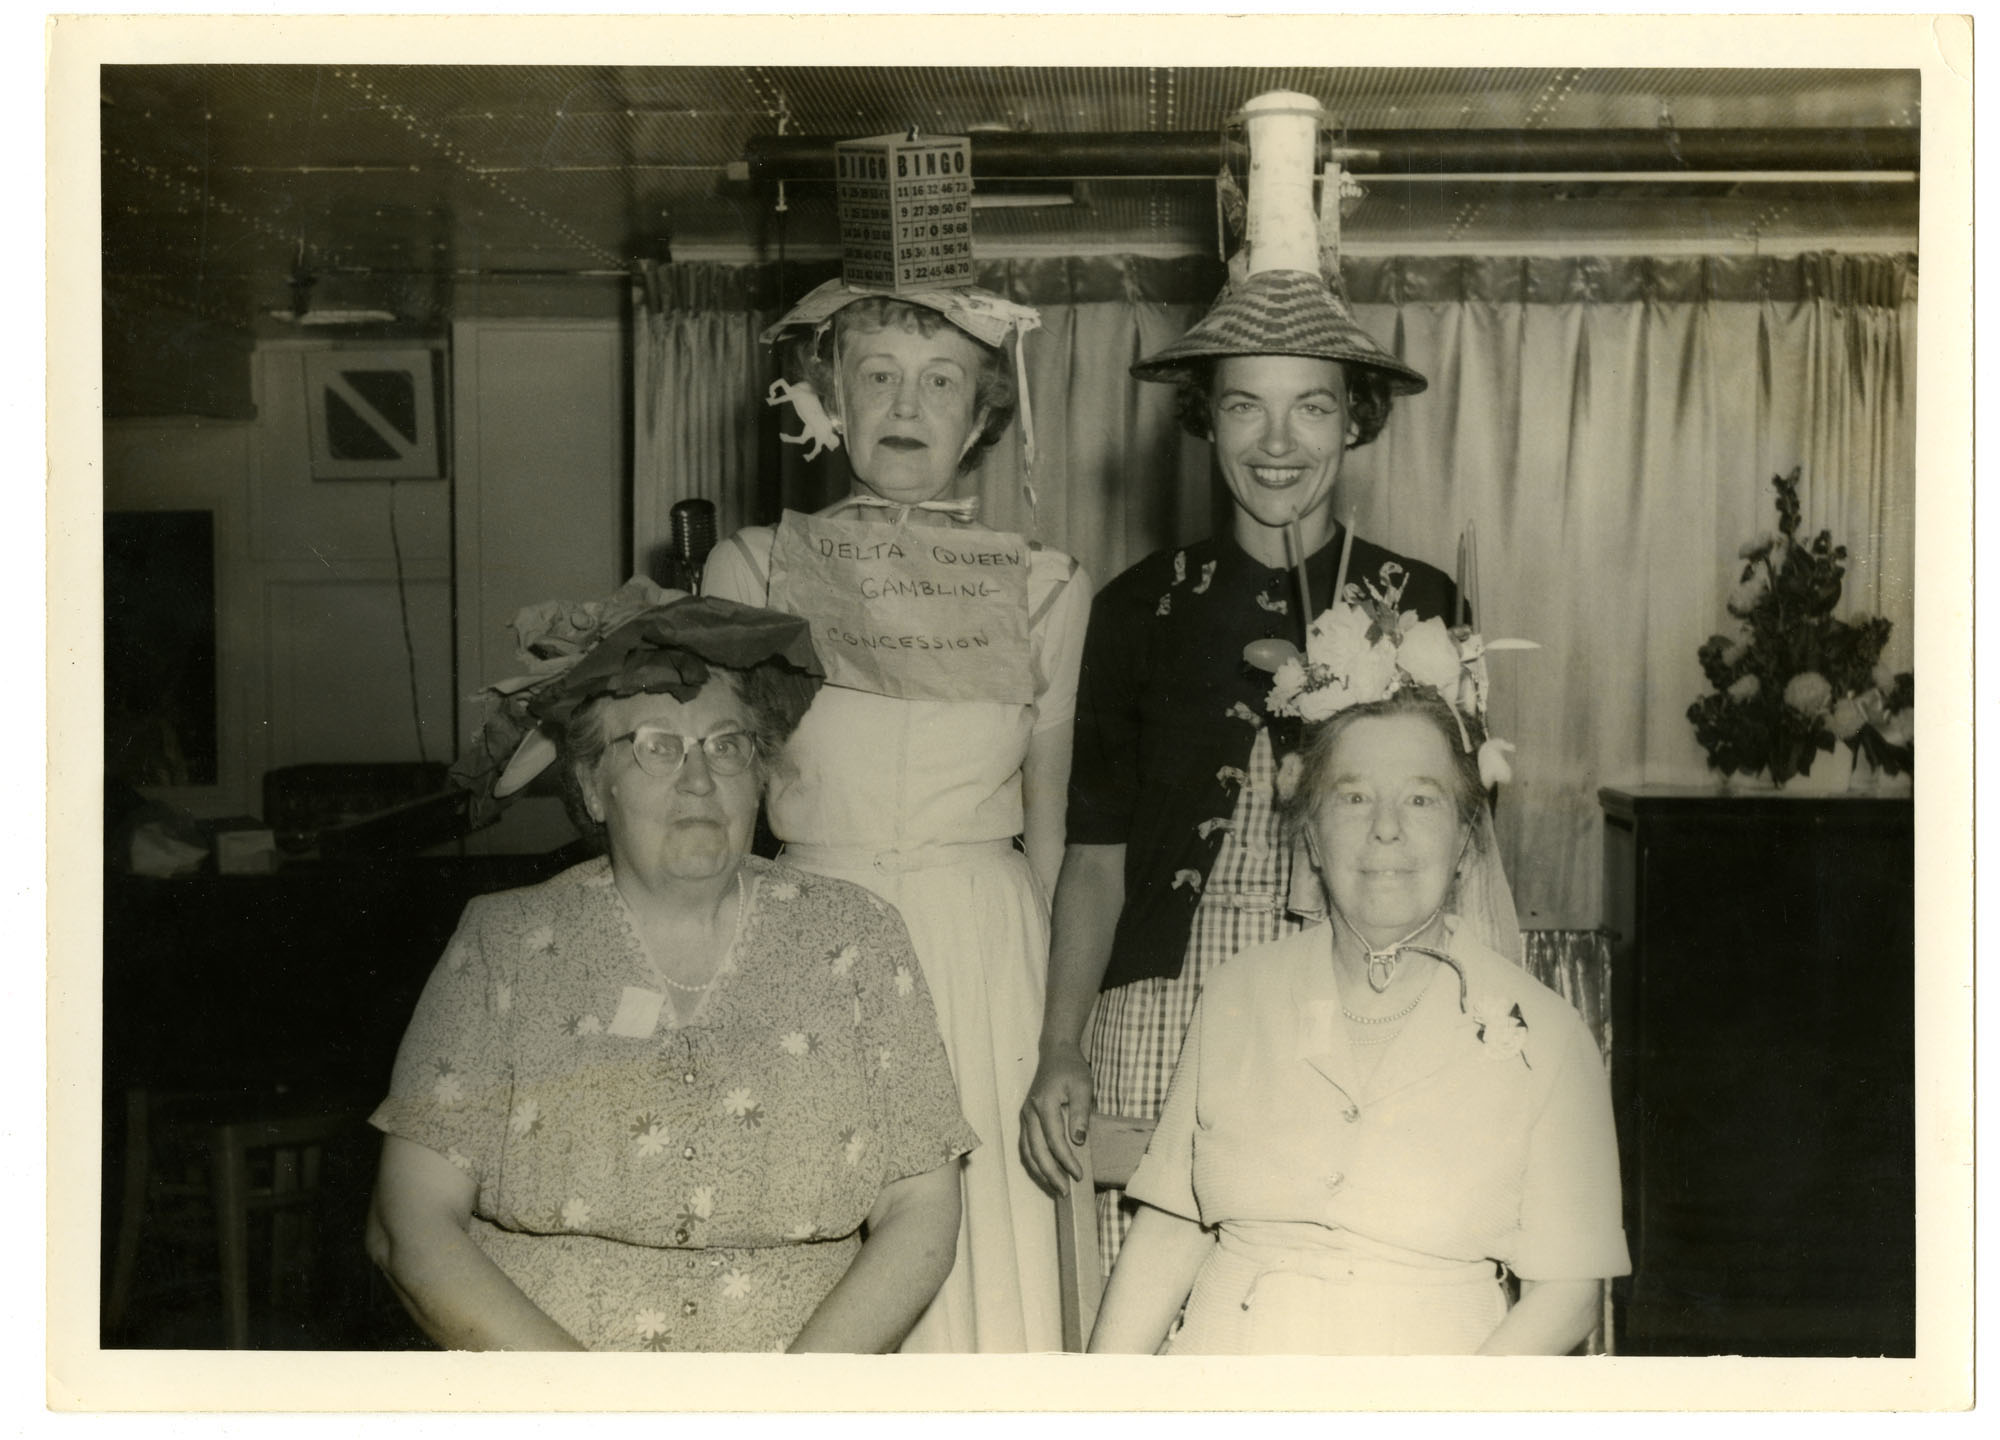 Mabel Pollitzer (bottom right) and women with hand-made hats